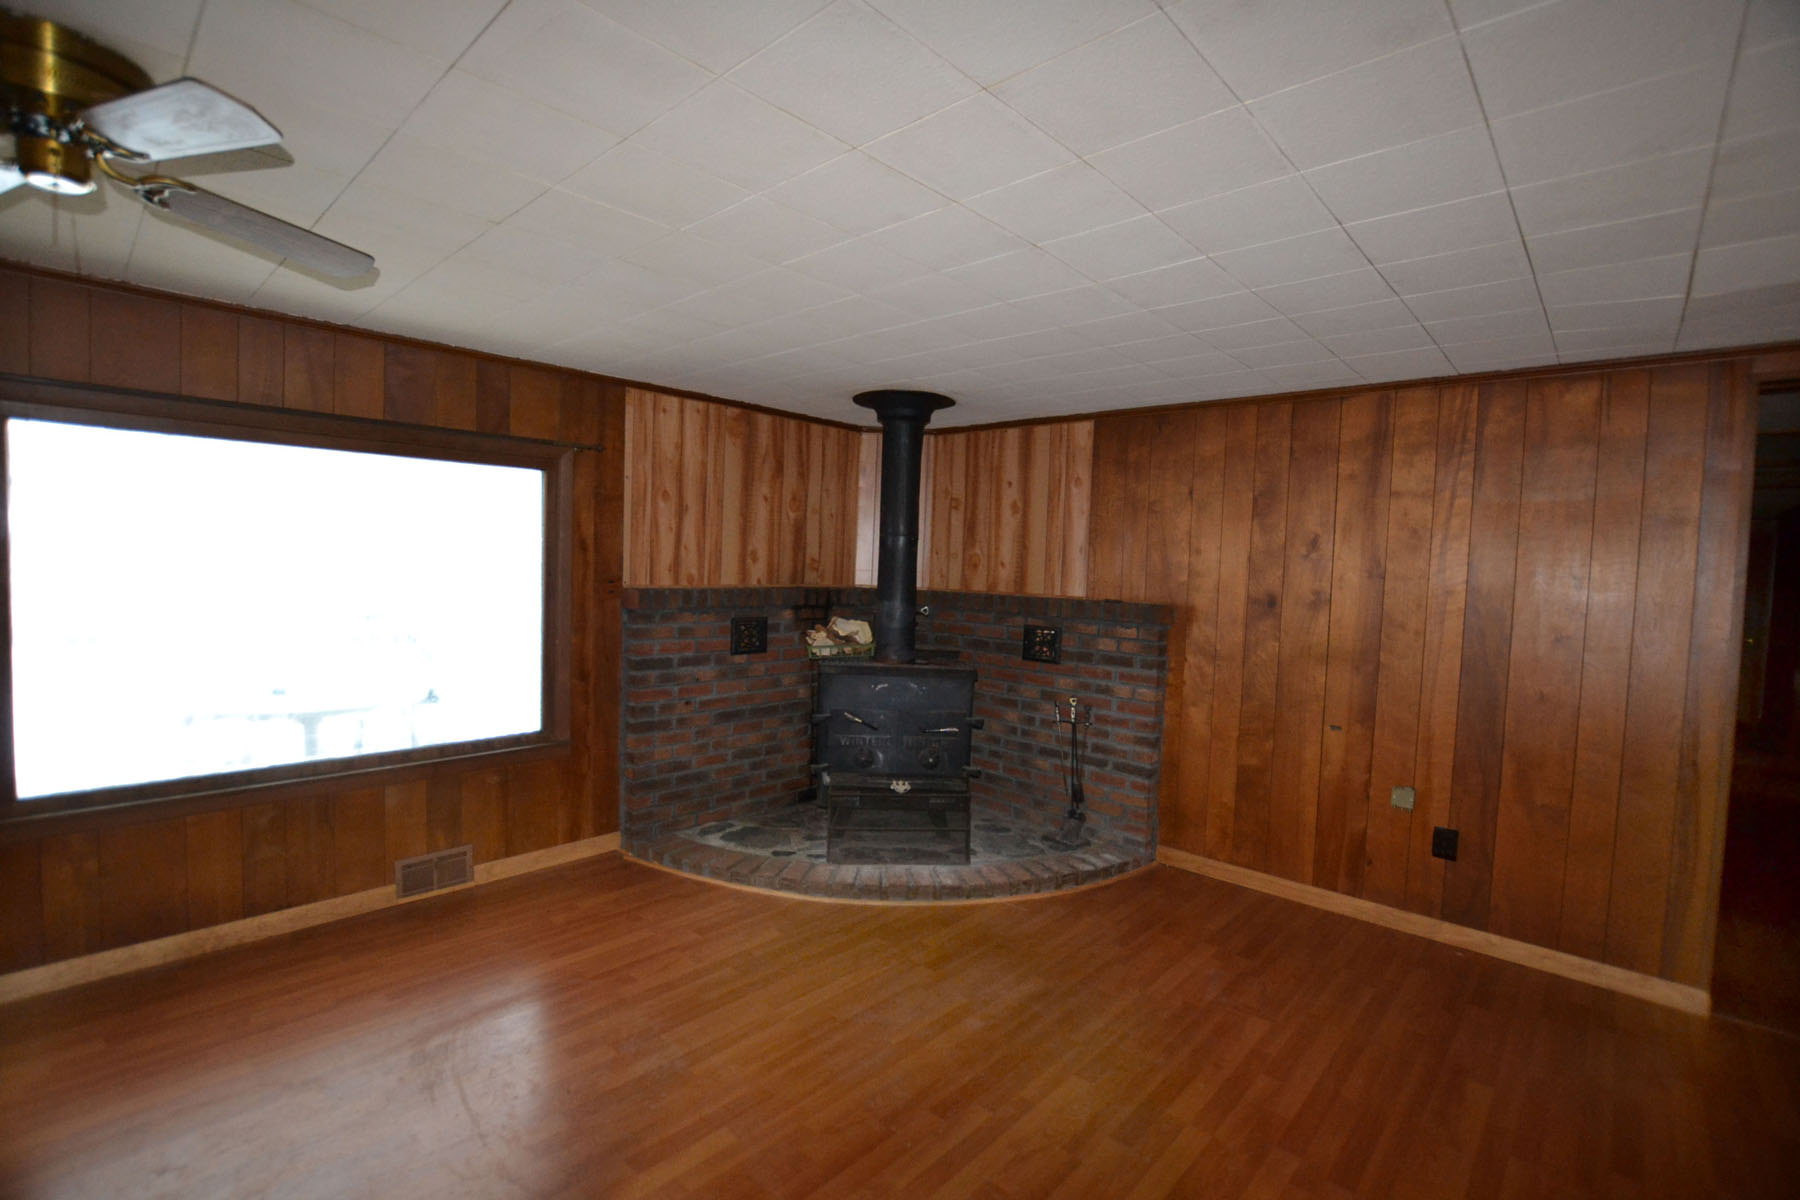 Additional photo for property listing at 6324 NYS Rt 28 6324 State Route 28 Indian Lake, New York 12812 United States